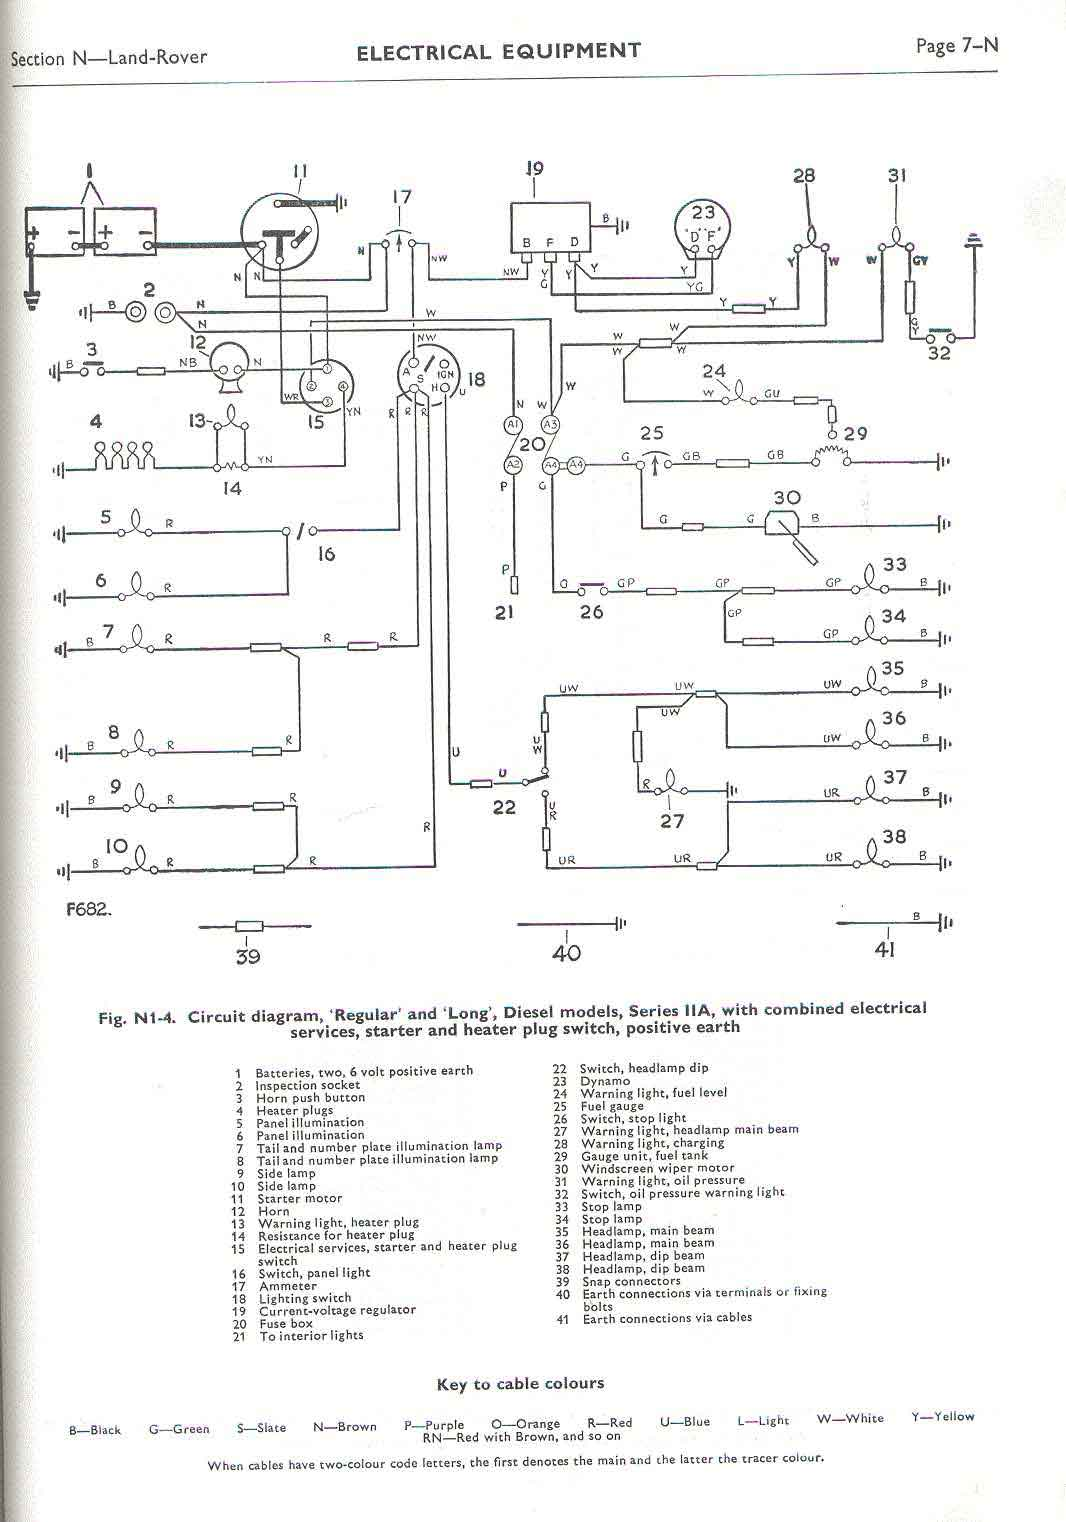 series 1 land rover wiring diagram land rover faq - repair & maintenance - series ... #5